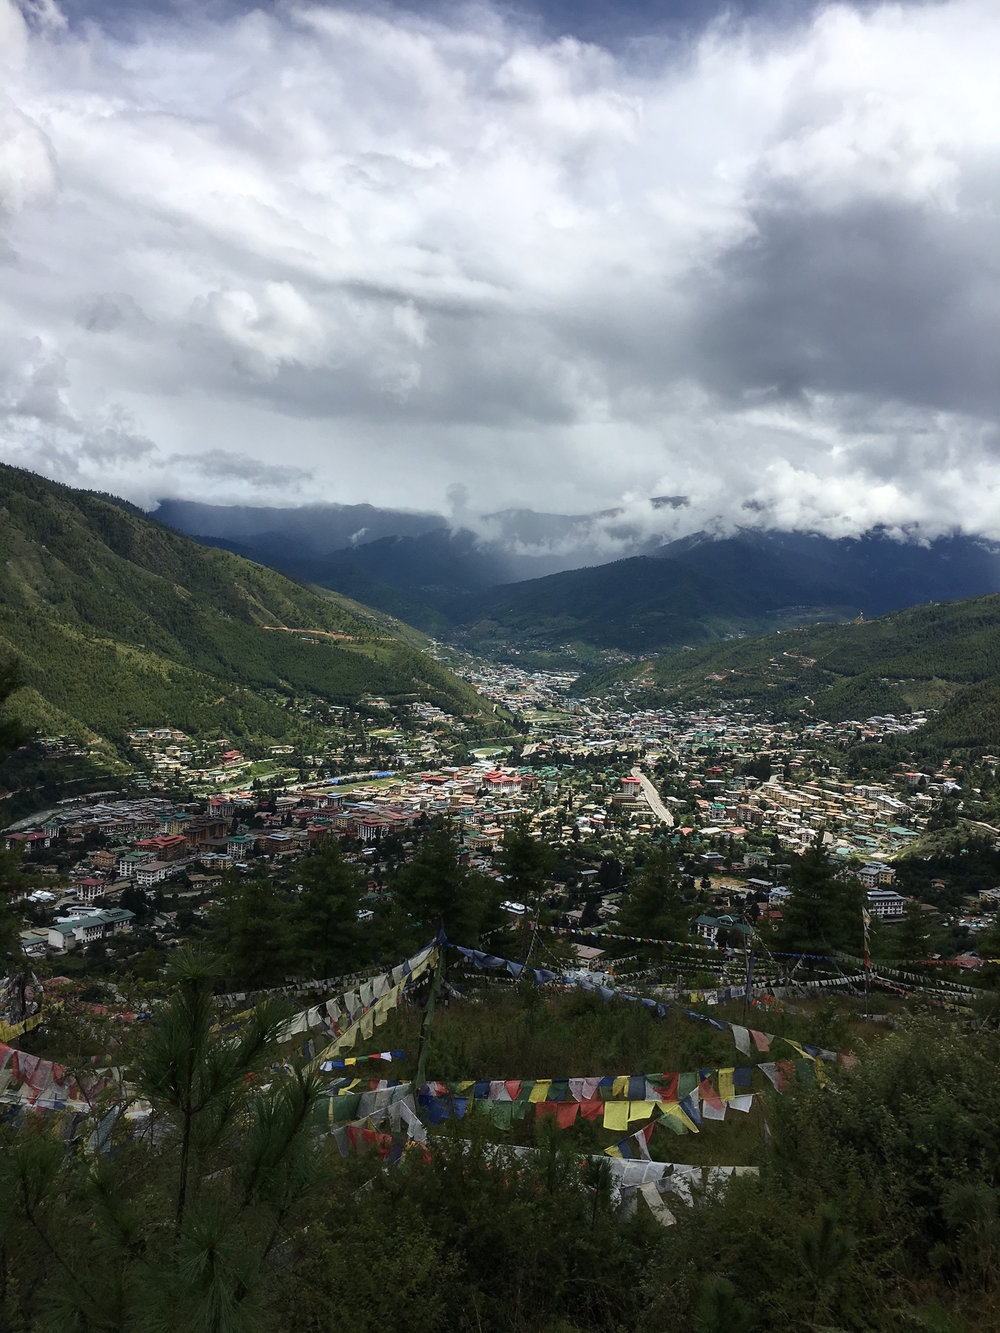 Today, September 6, 2016, I made it (walking!) up to Sangaygang, the look-out point overlooking Thimphu Valley. I've done the walk hundreds of times over the years. Today was special, and I took this glorious photo of Thimphu Valley canopied by late monsoon clouds. To me it's the most beautiful sight in the world. I've been dreaming of this day, obsessing, focusing my whole existence on it at times, visualizing myself standing on this very spot, looking out onto this place I love so much. I fractured my kneecap last February in an accident in the U.S. and have had a long and painful recovery. But it wasn't all bad. I was so lucky to have angels and Buddhas around me the whole time: a great surgeon, Dr. Chris Anderson, and an army of techs, friends, nurses, and physical therapists who got me to this place. In no particular order: my sister, Elizabeth Starnes, Monica, Gary, Beautiful Joelle, Bev Graves, Indiana, Jamie Richards, Dennis, Morgan Clouse, Eva, Colleen and Harry Whitver, Marilyn Murphy, Barry Buxkamper, Mary Talley, Vin, Rob and Carol Stein, Suzanne Cassel, Cody, Nichelle, Belinda, Lynee Durham, Jeff Danley, Vicki Wilburn, Lonnie Frey,  Bob Durham, ANGIE!, Anne Whitver and so many others. Thank you! With your help I can climb mountains. Sending love from Bhutan.